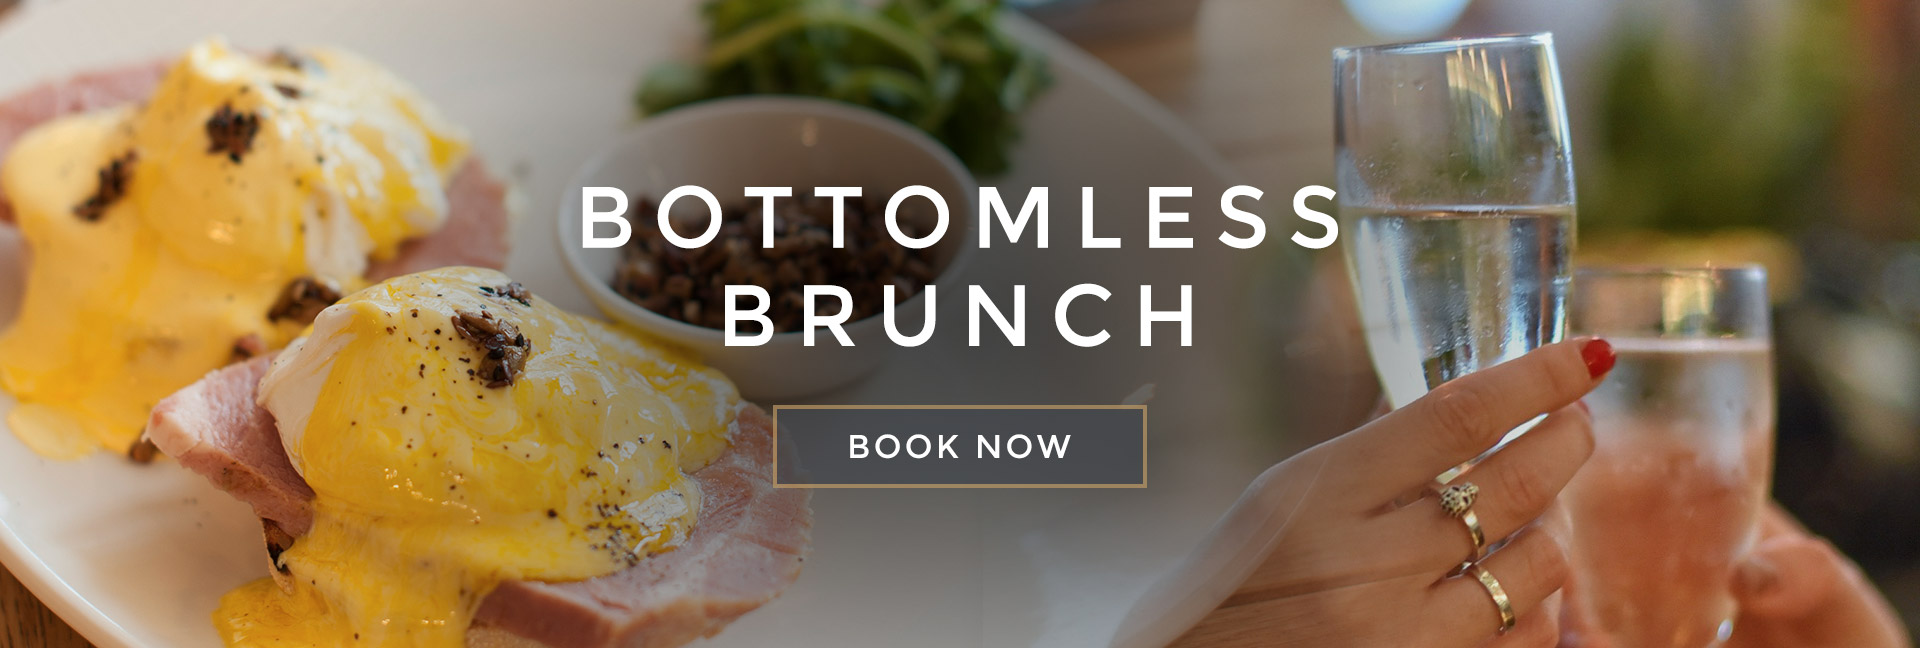 Bottomless Brunch at All Bar One Wimbledon - Book now